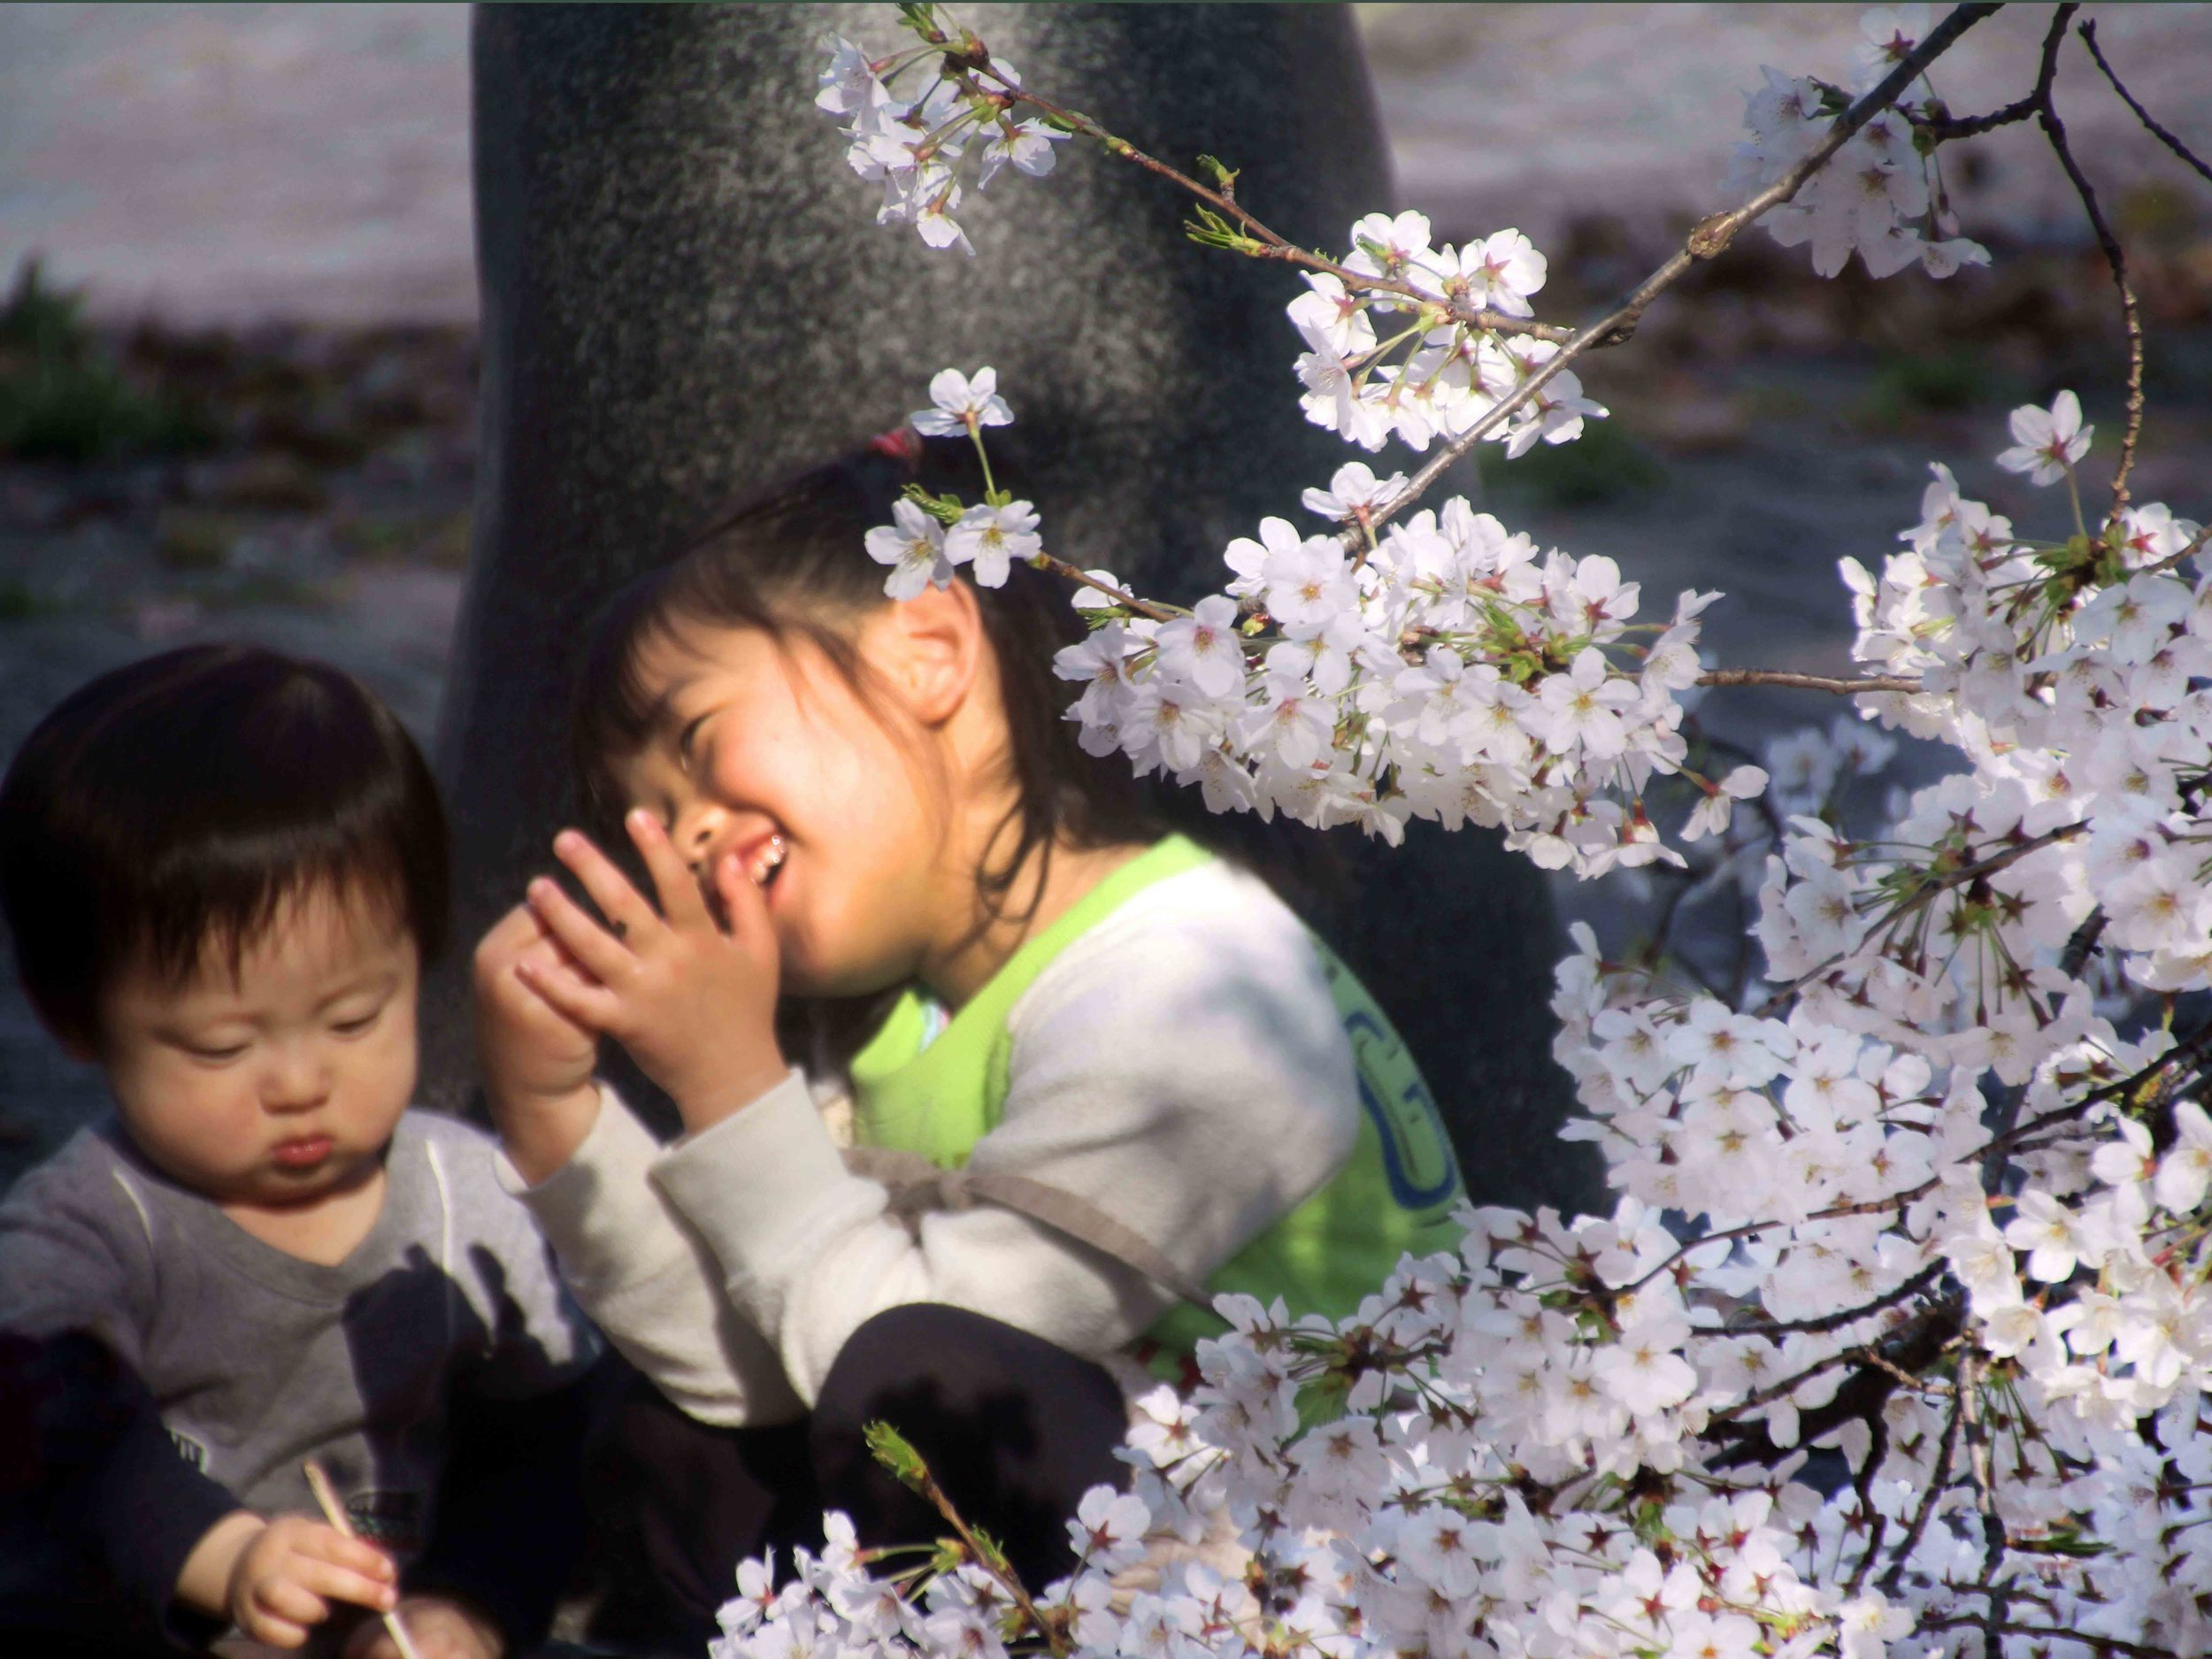 WEB-Japan,-Nagoya-Palace,-Children-at-Play-Under-the-Cherry-Blossoms.jpg